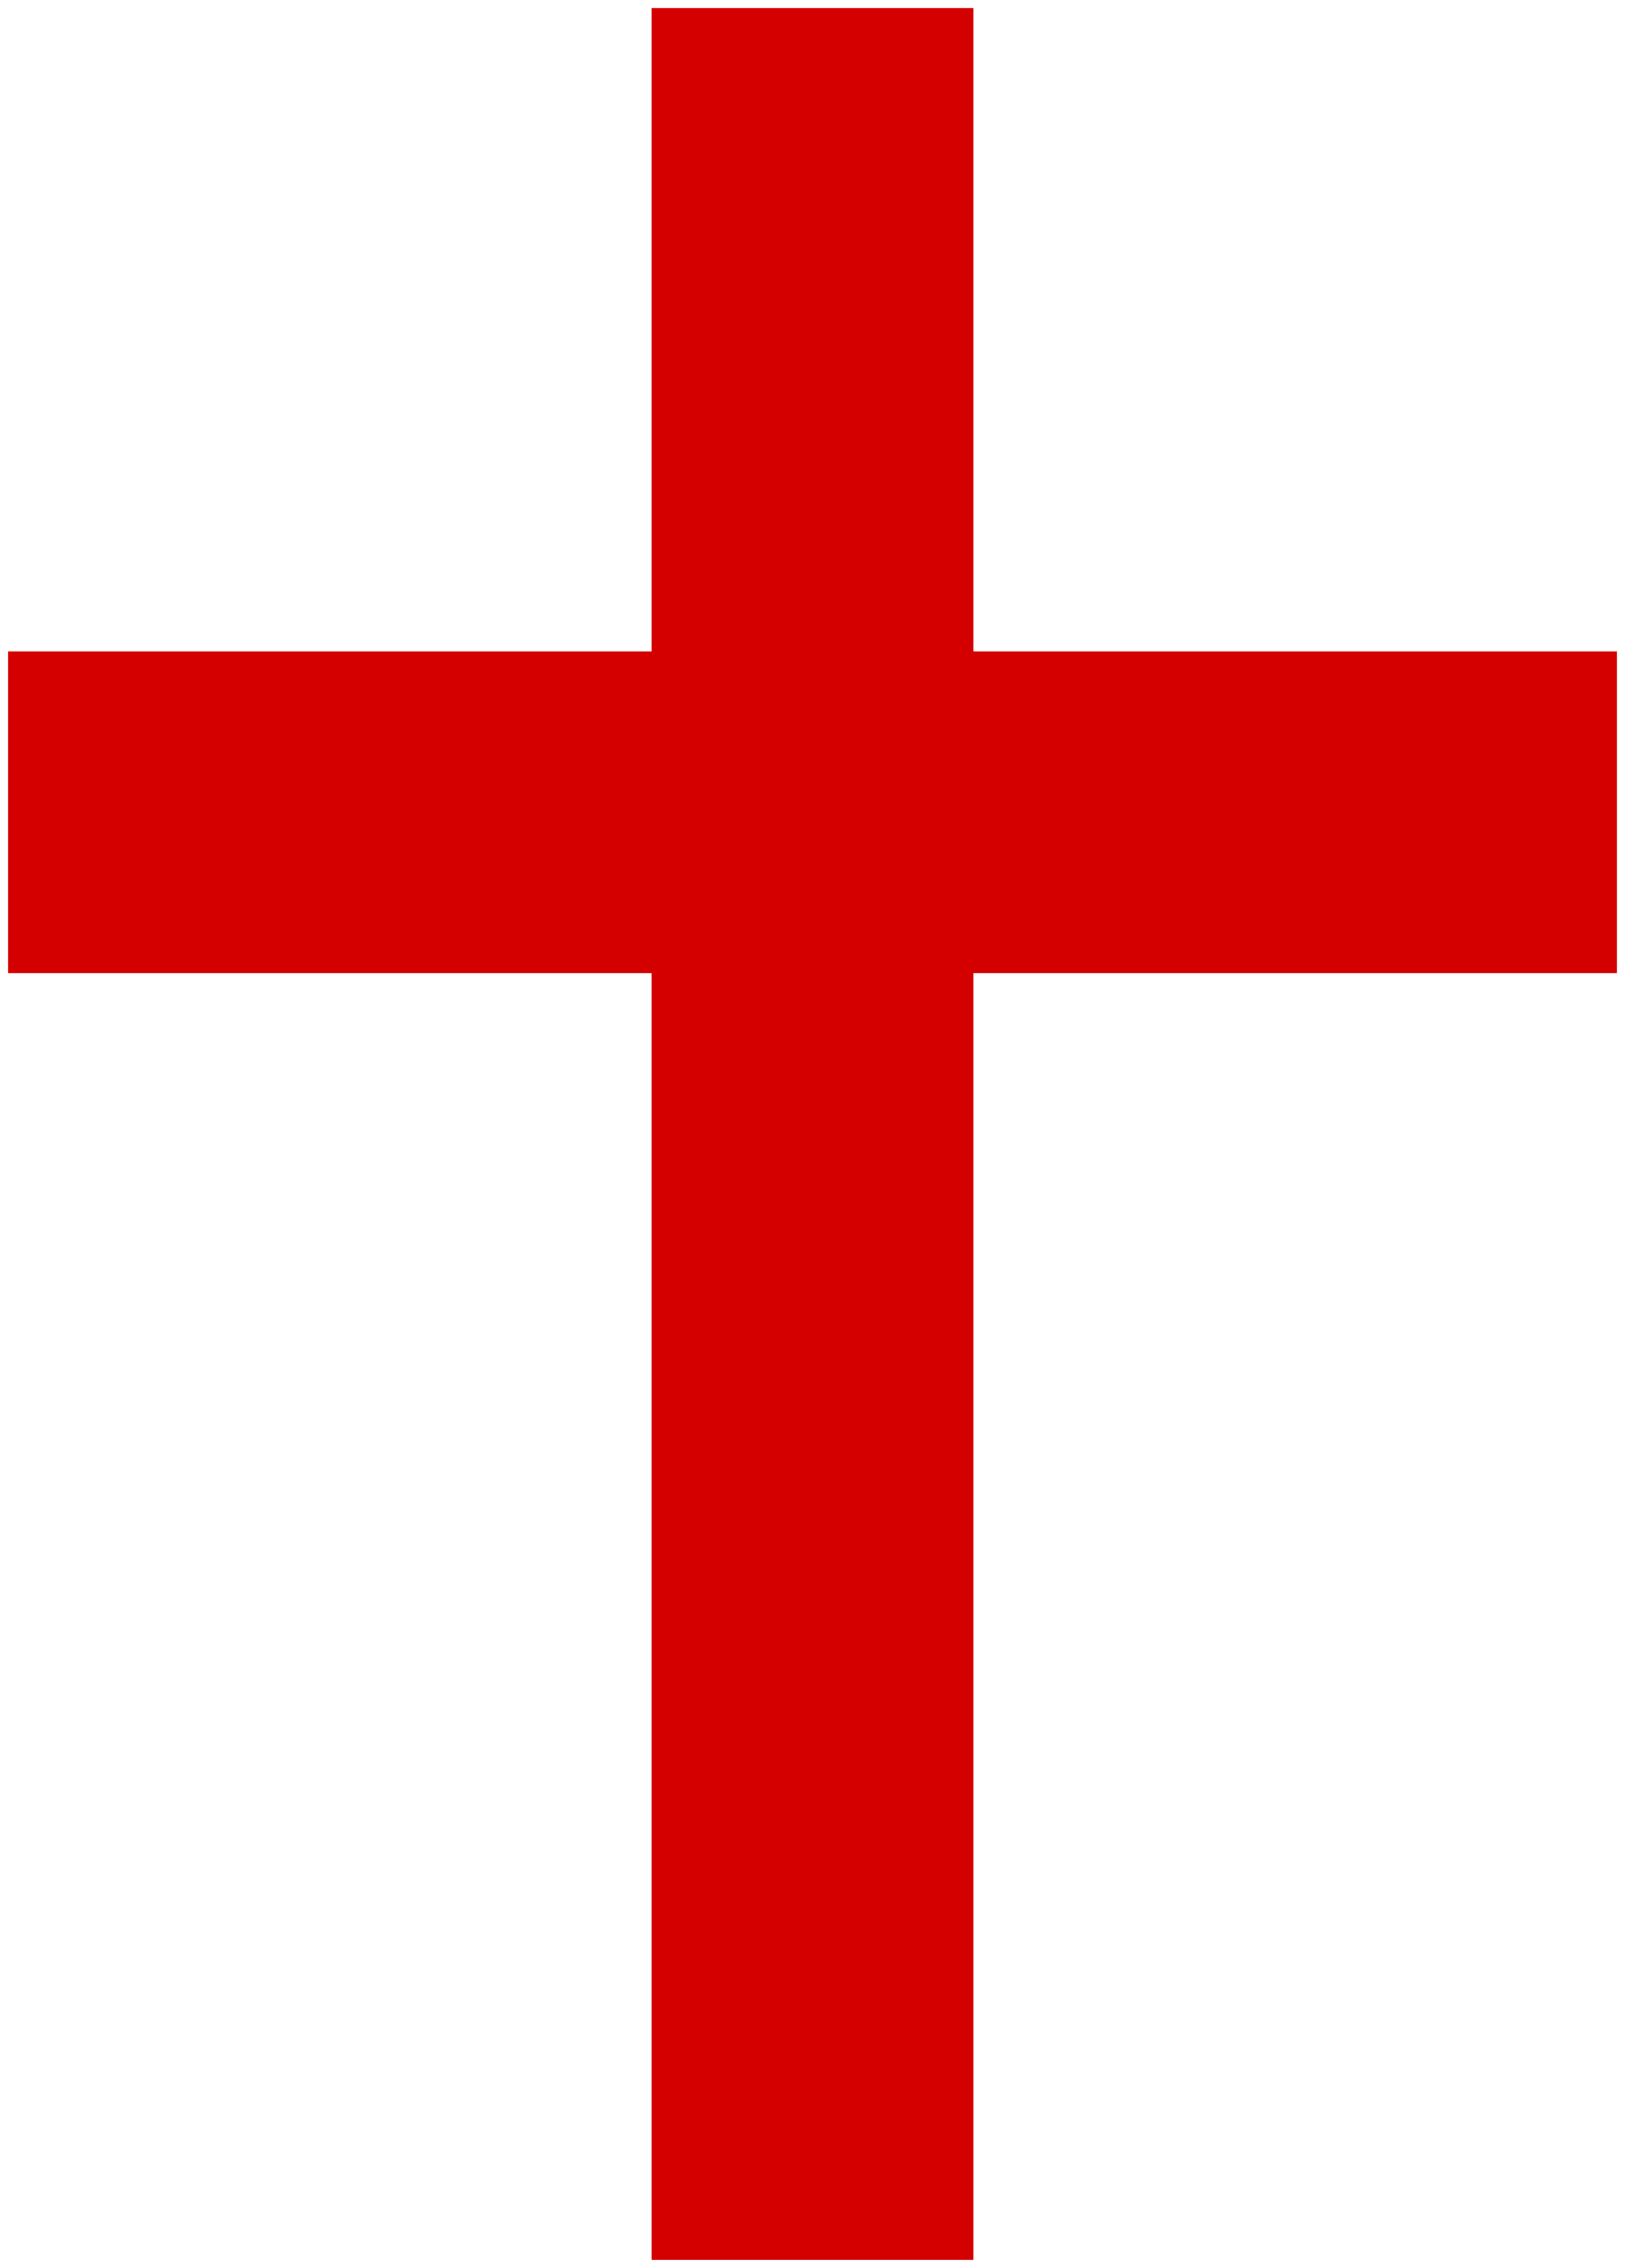 Cross clipart christianity. Christian png images transparent